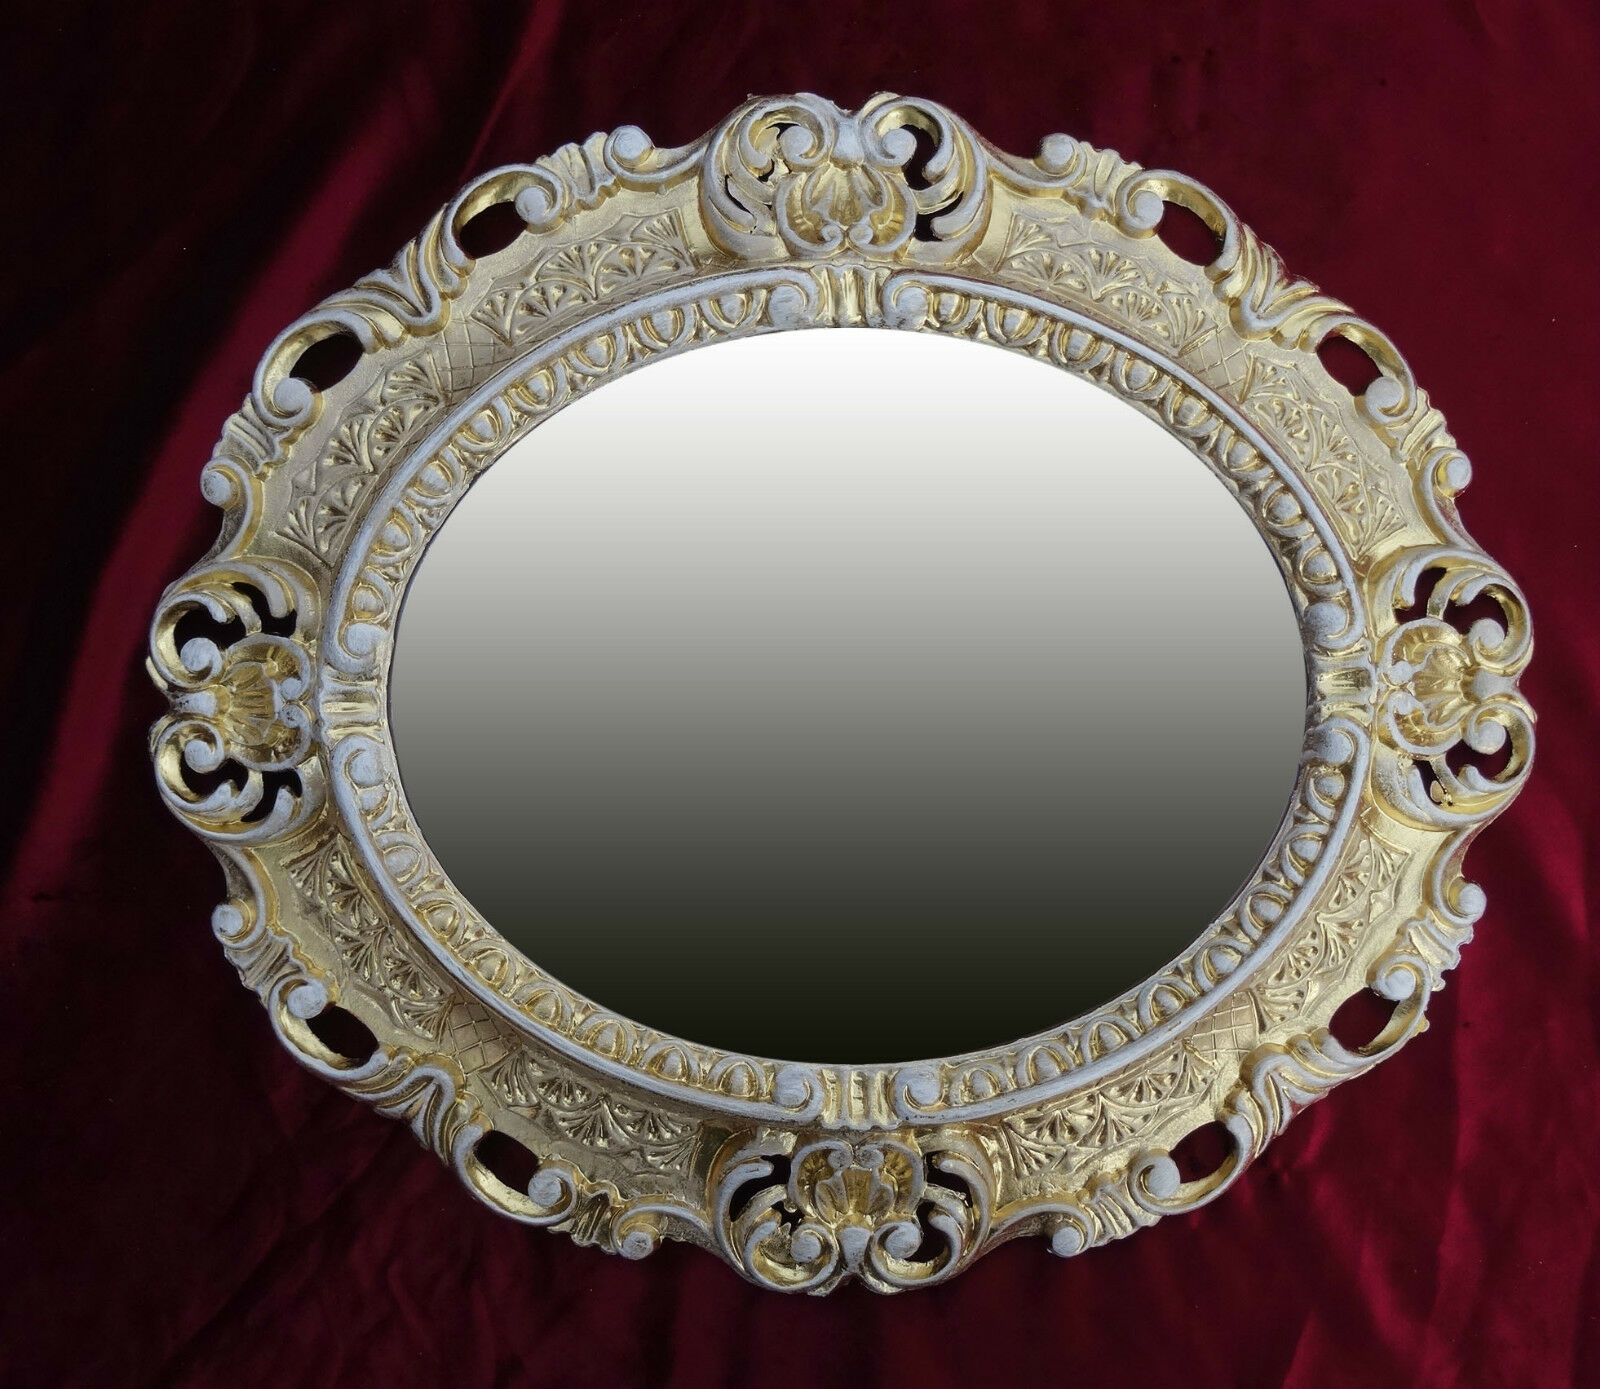 wallmirror mirror gold white oval 45x38 cm baroque antique vintage repro 345 3 ebay. Black Bedroom Furniture Sets. Home Design Ideas